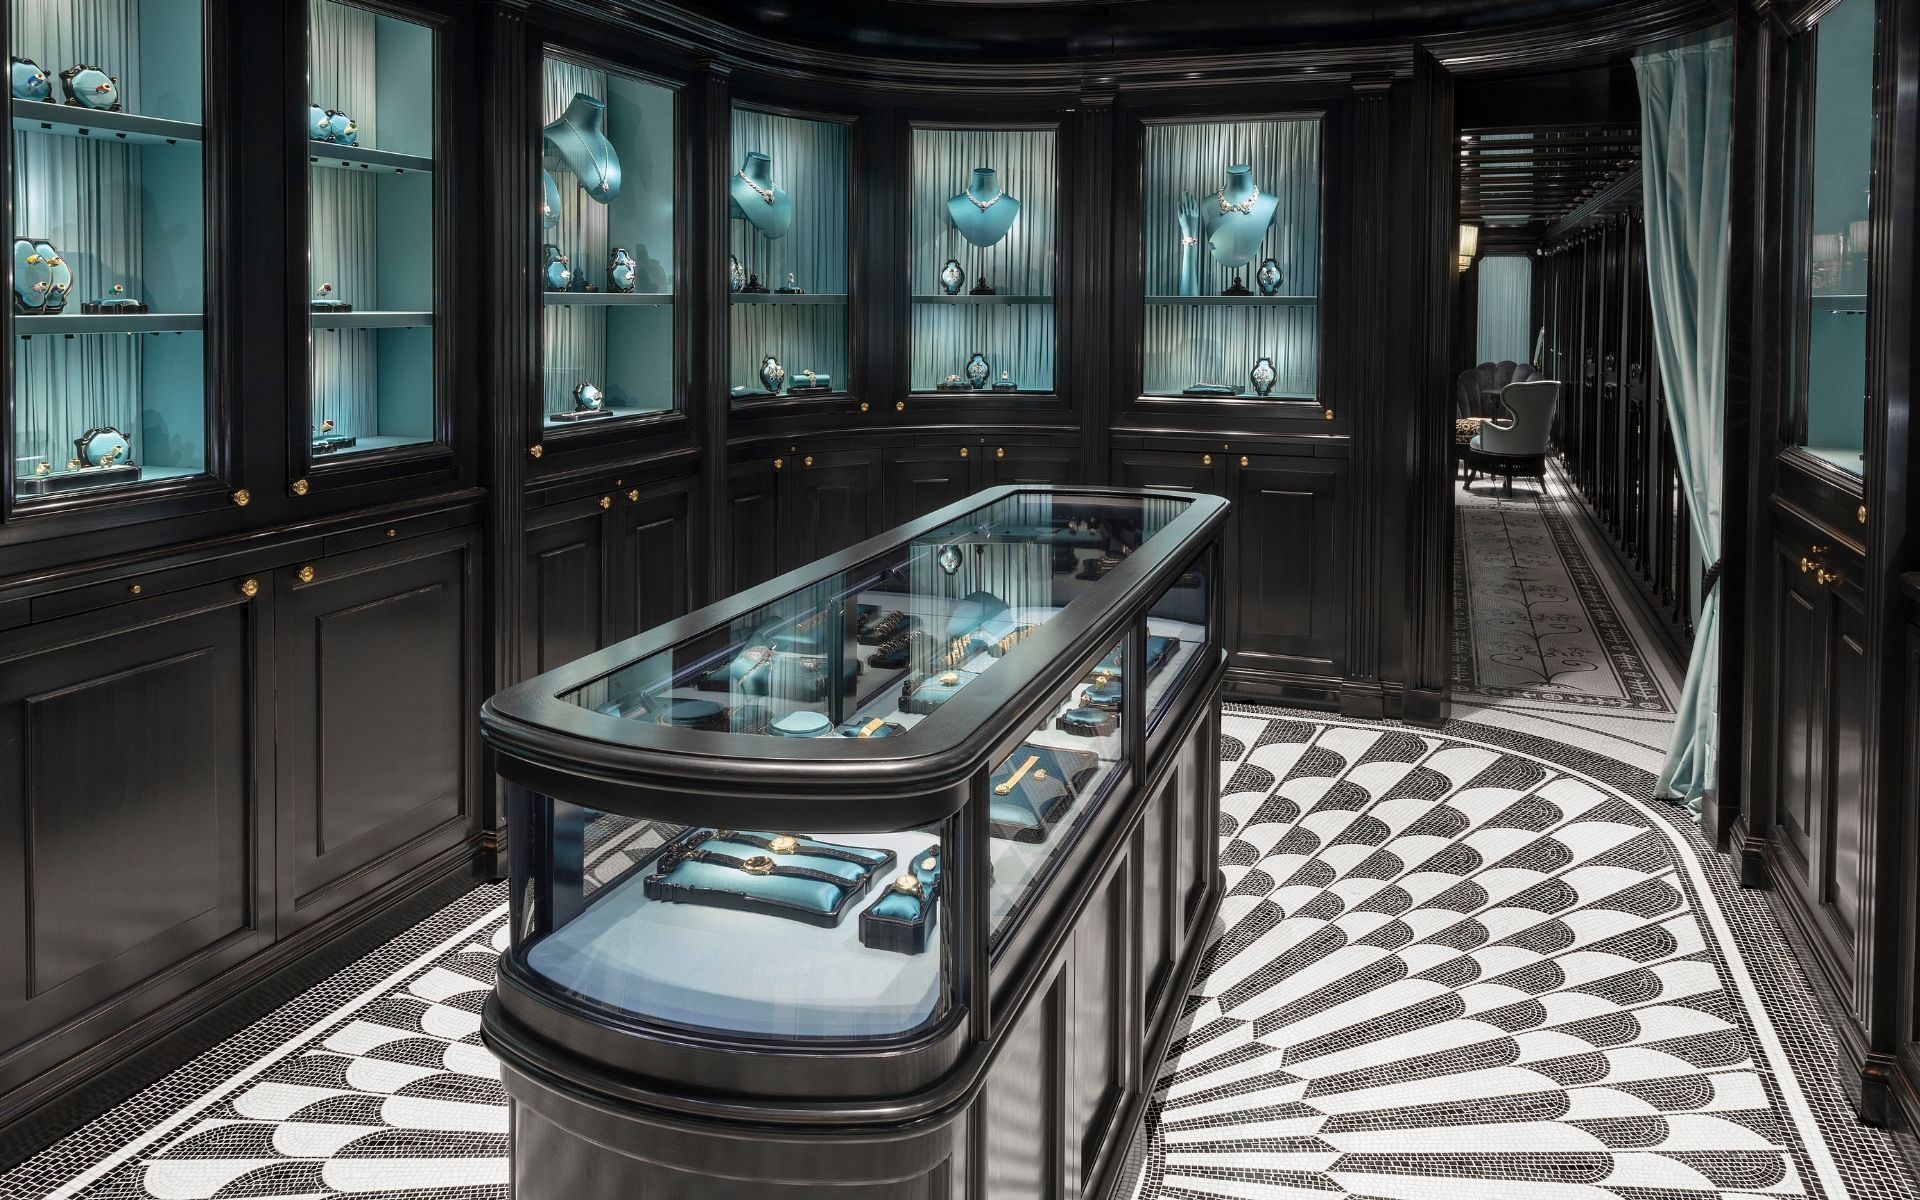 Gucci Debuts Hortus Deliciarum High Jewellery Collection At Its New Vendôme Boutique